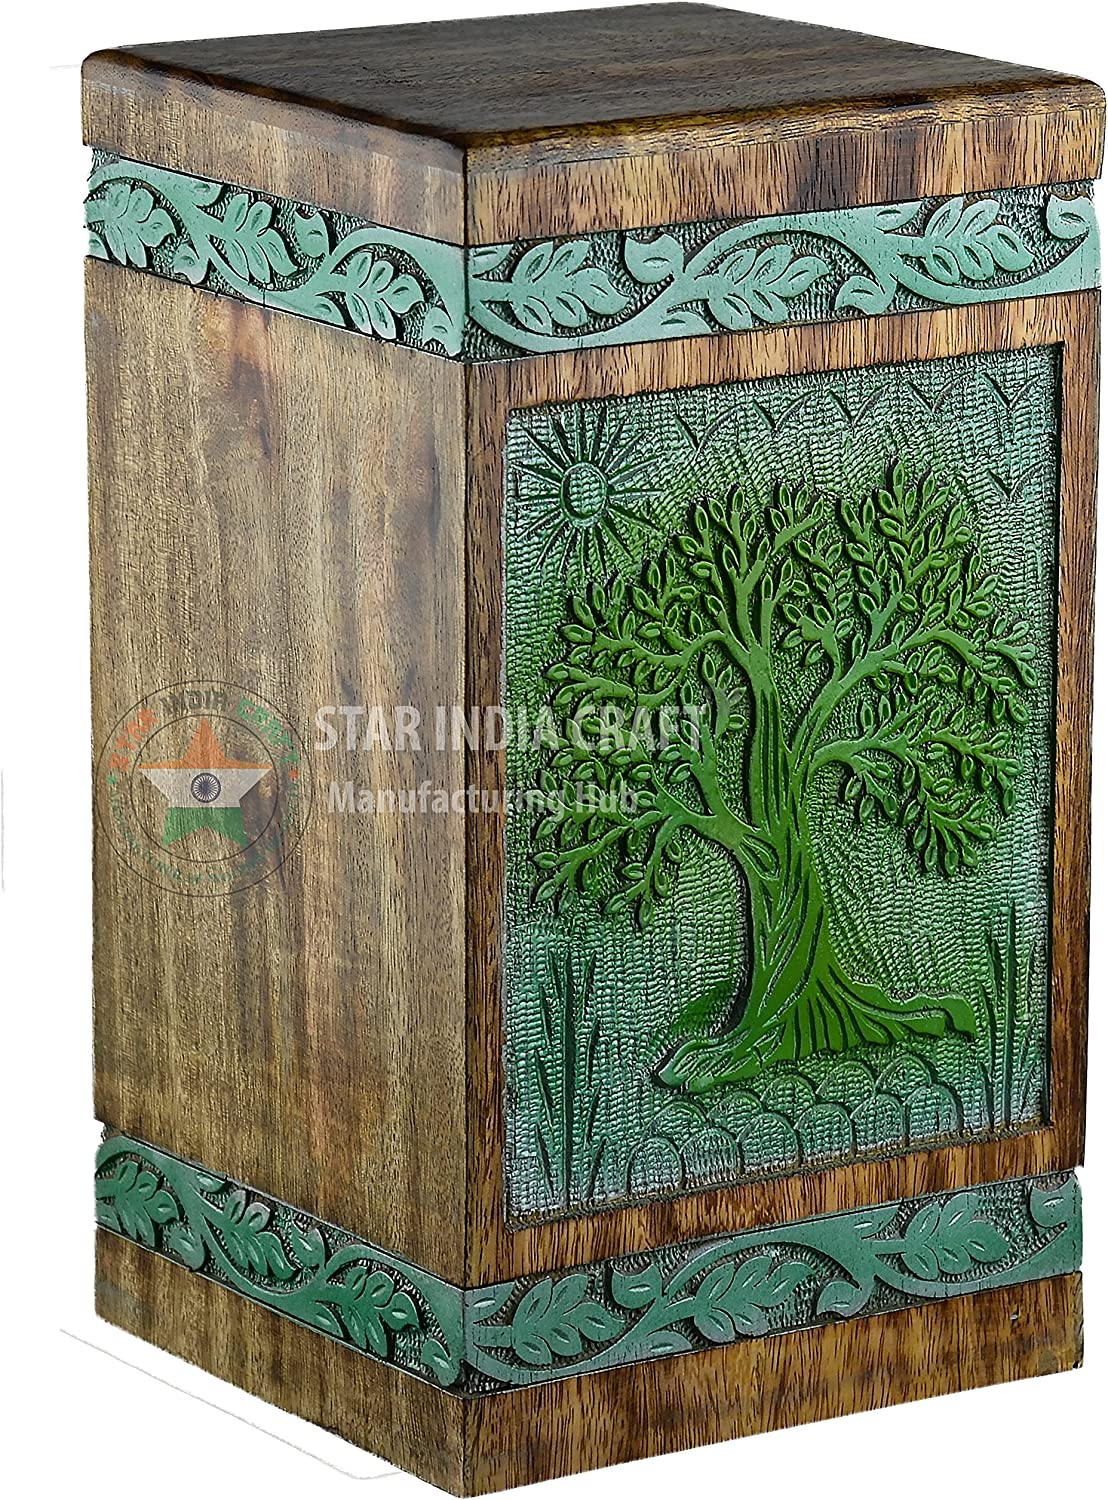 STAR INDIA Max 58% OFF CRAFT Urns for Rosewood Ashes Cremation Human New Orleans Mall Adult